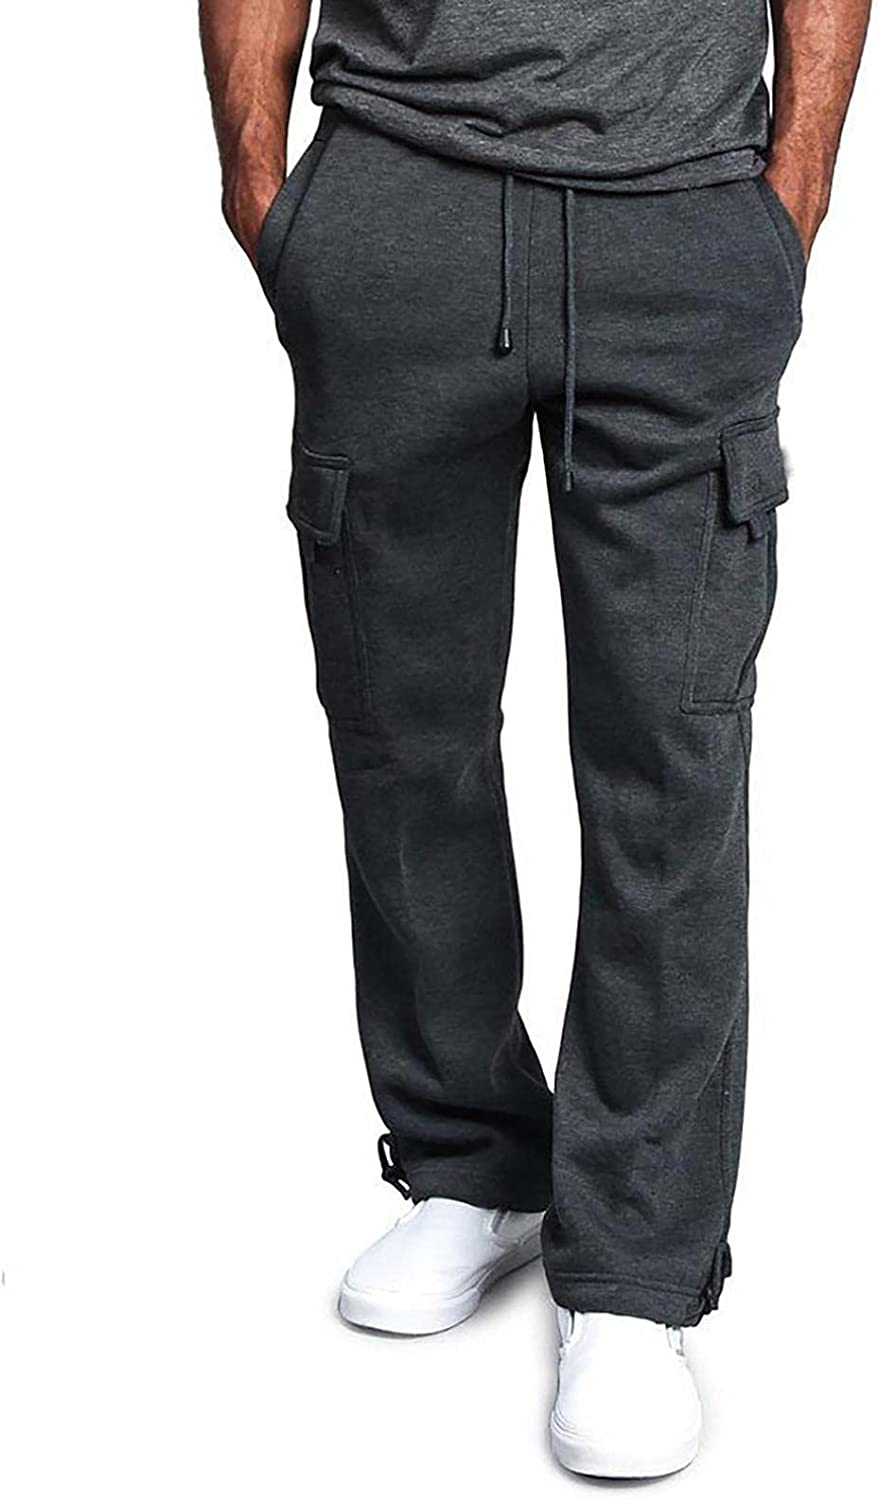 Beshion Mens Cargo Pants Casual Overalls Splicing Work Sweatpants Straight Stretch Loose Trouser Workwear with Multi Pockets